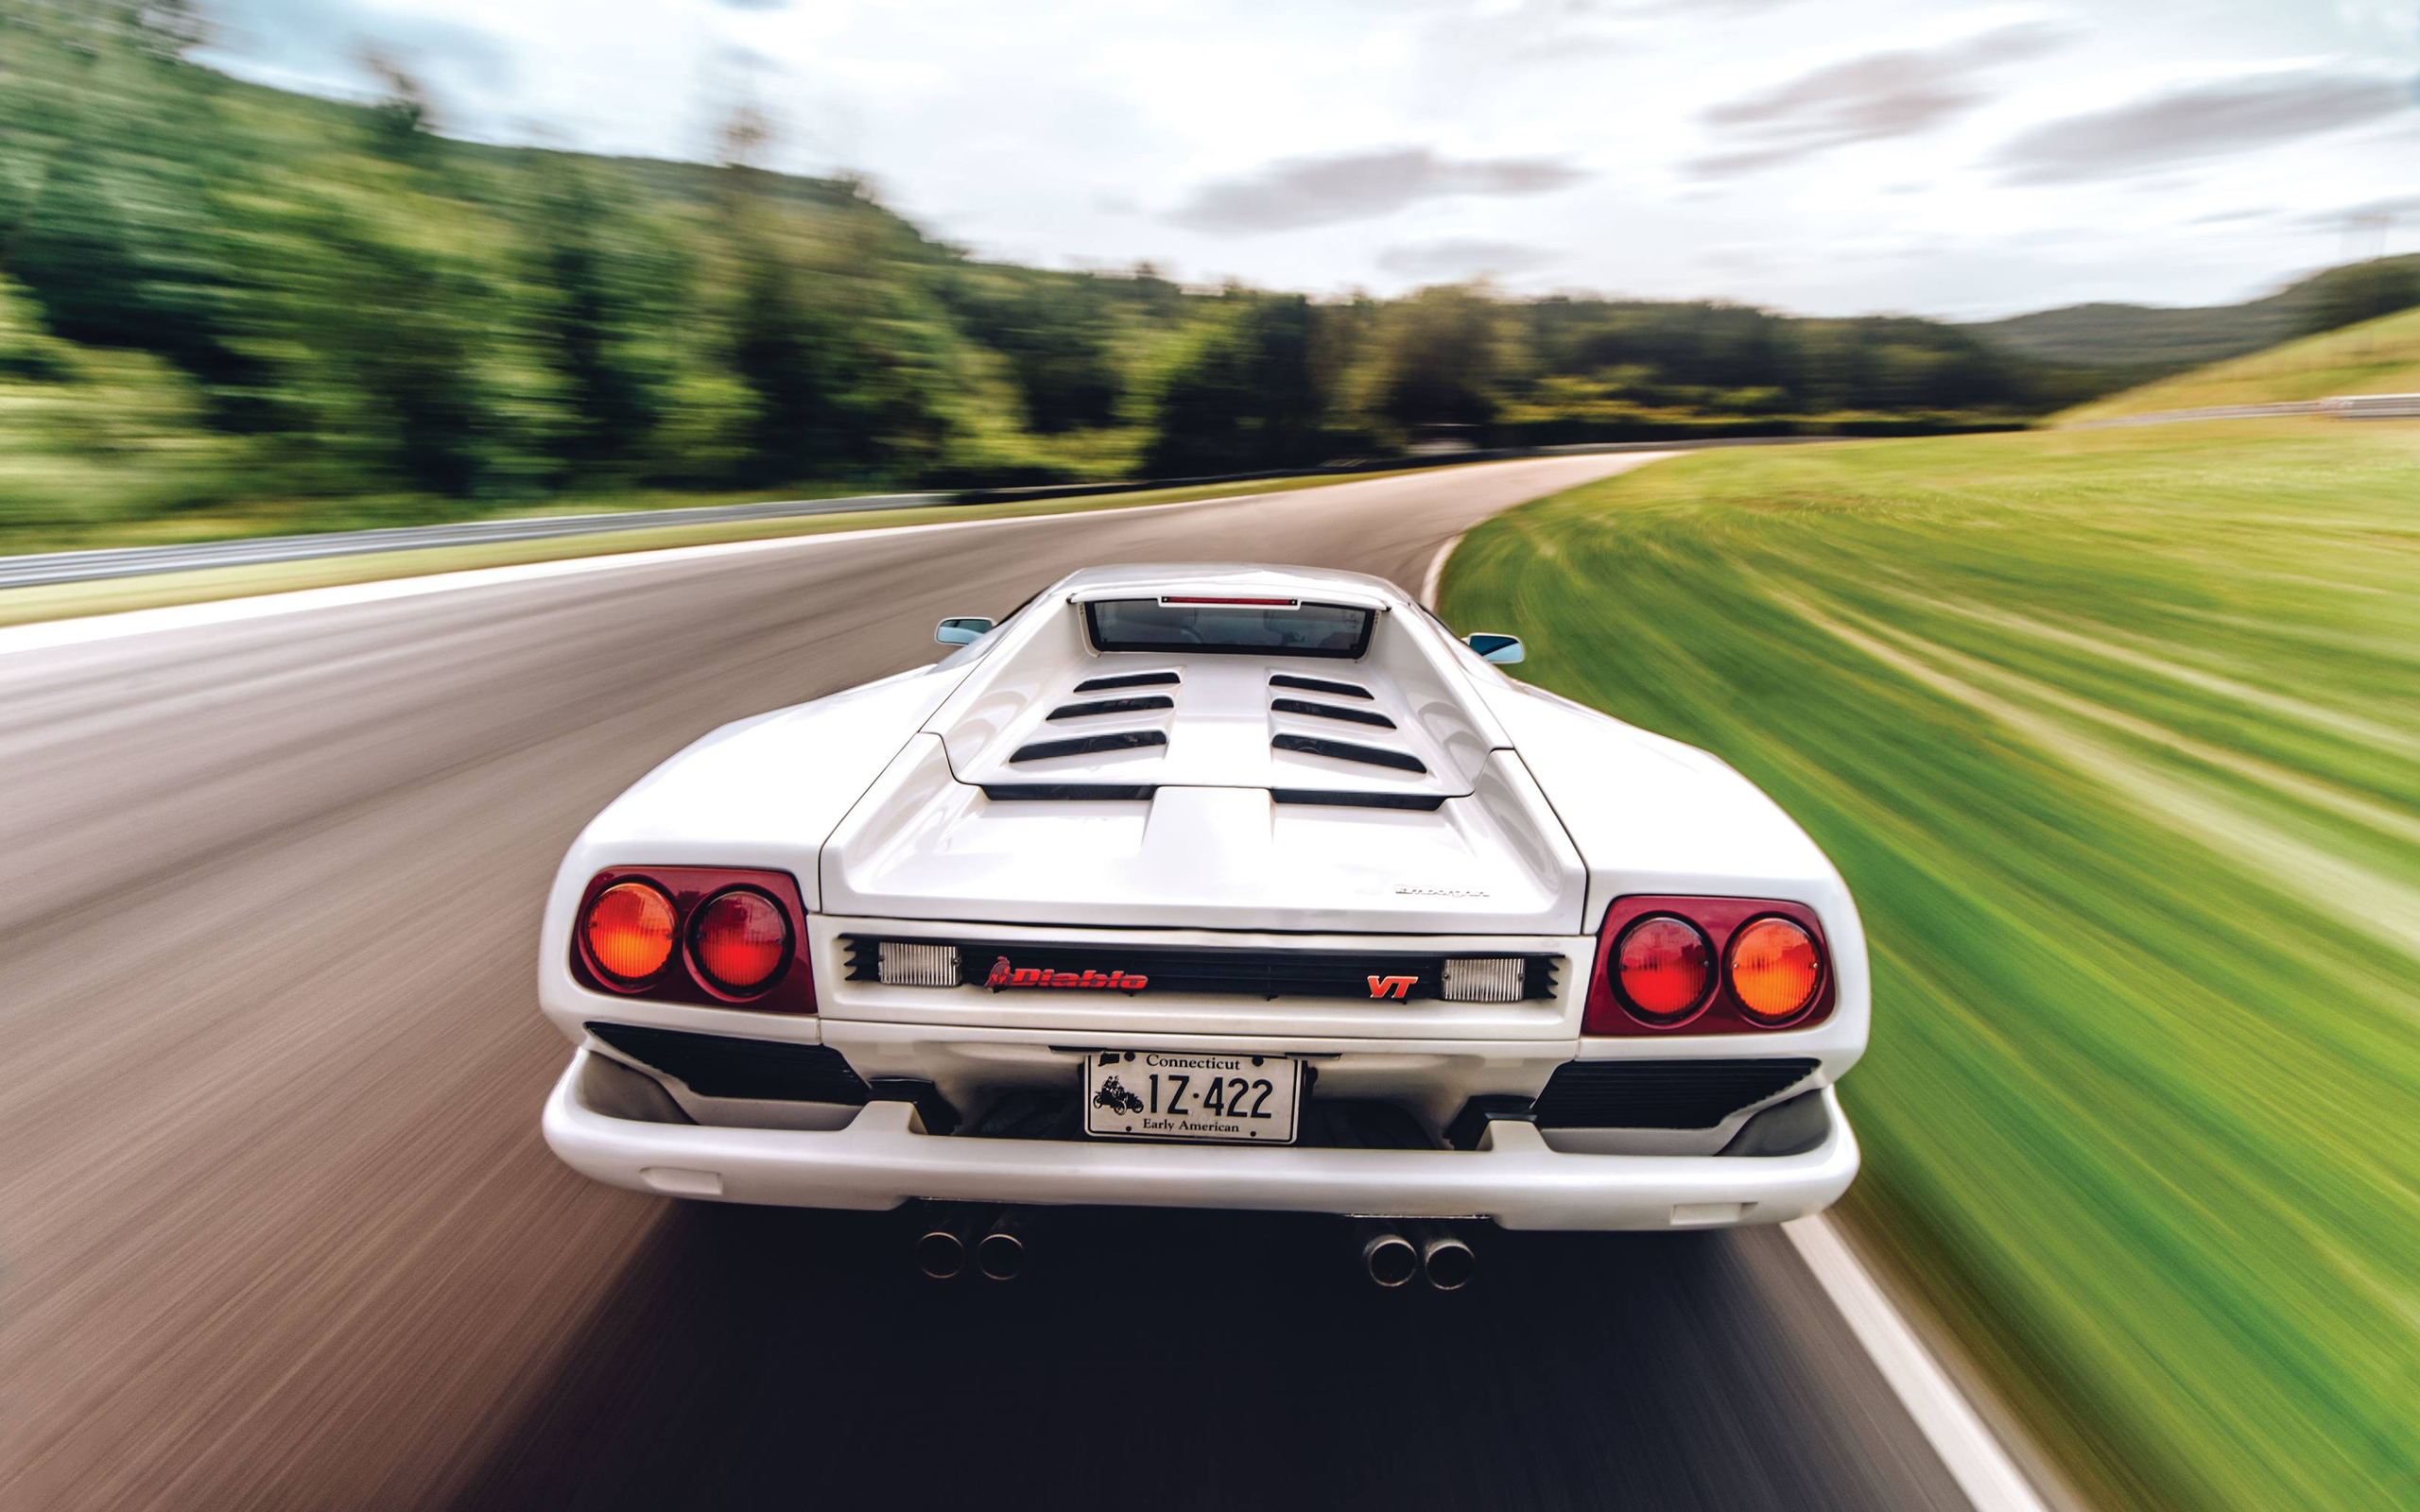 2560x1600 Lamborghini Diablo Vt 2560x1600 Resolution Hd 4k